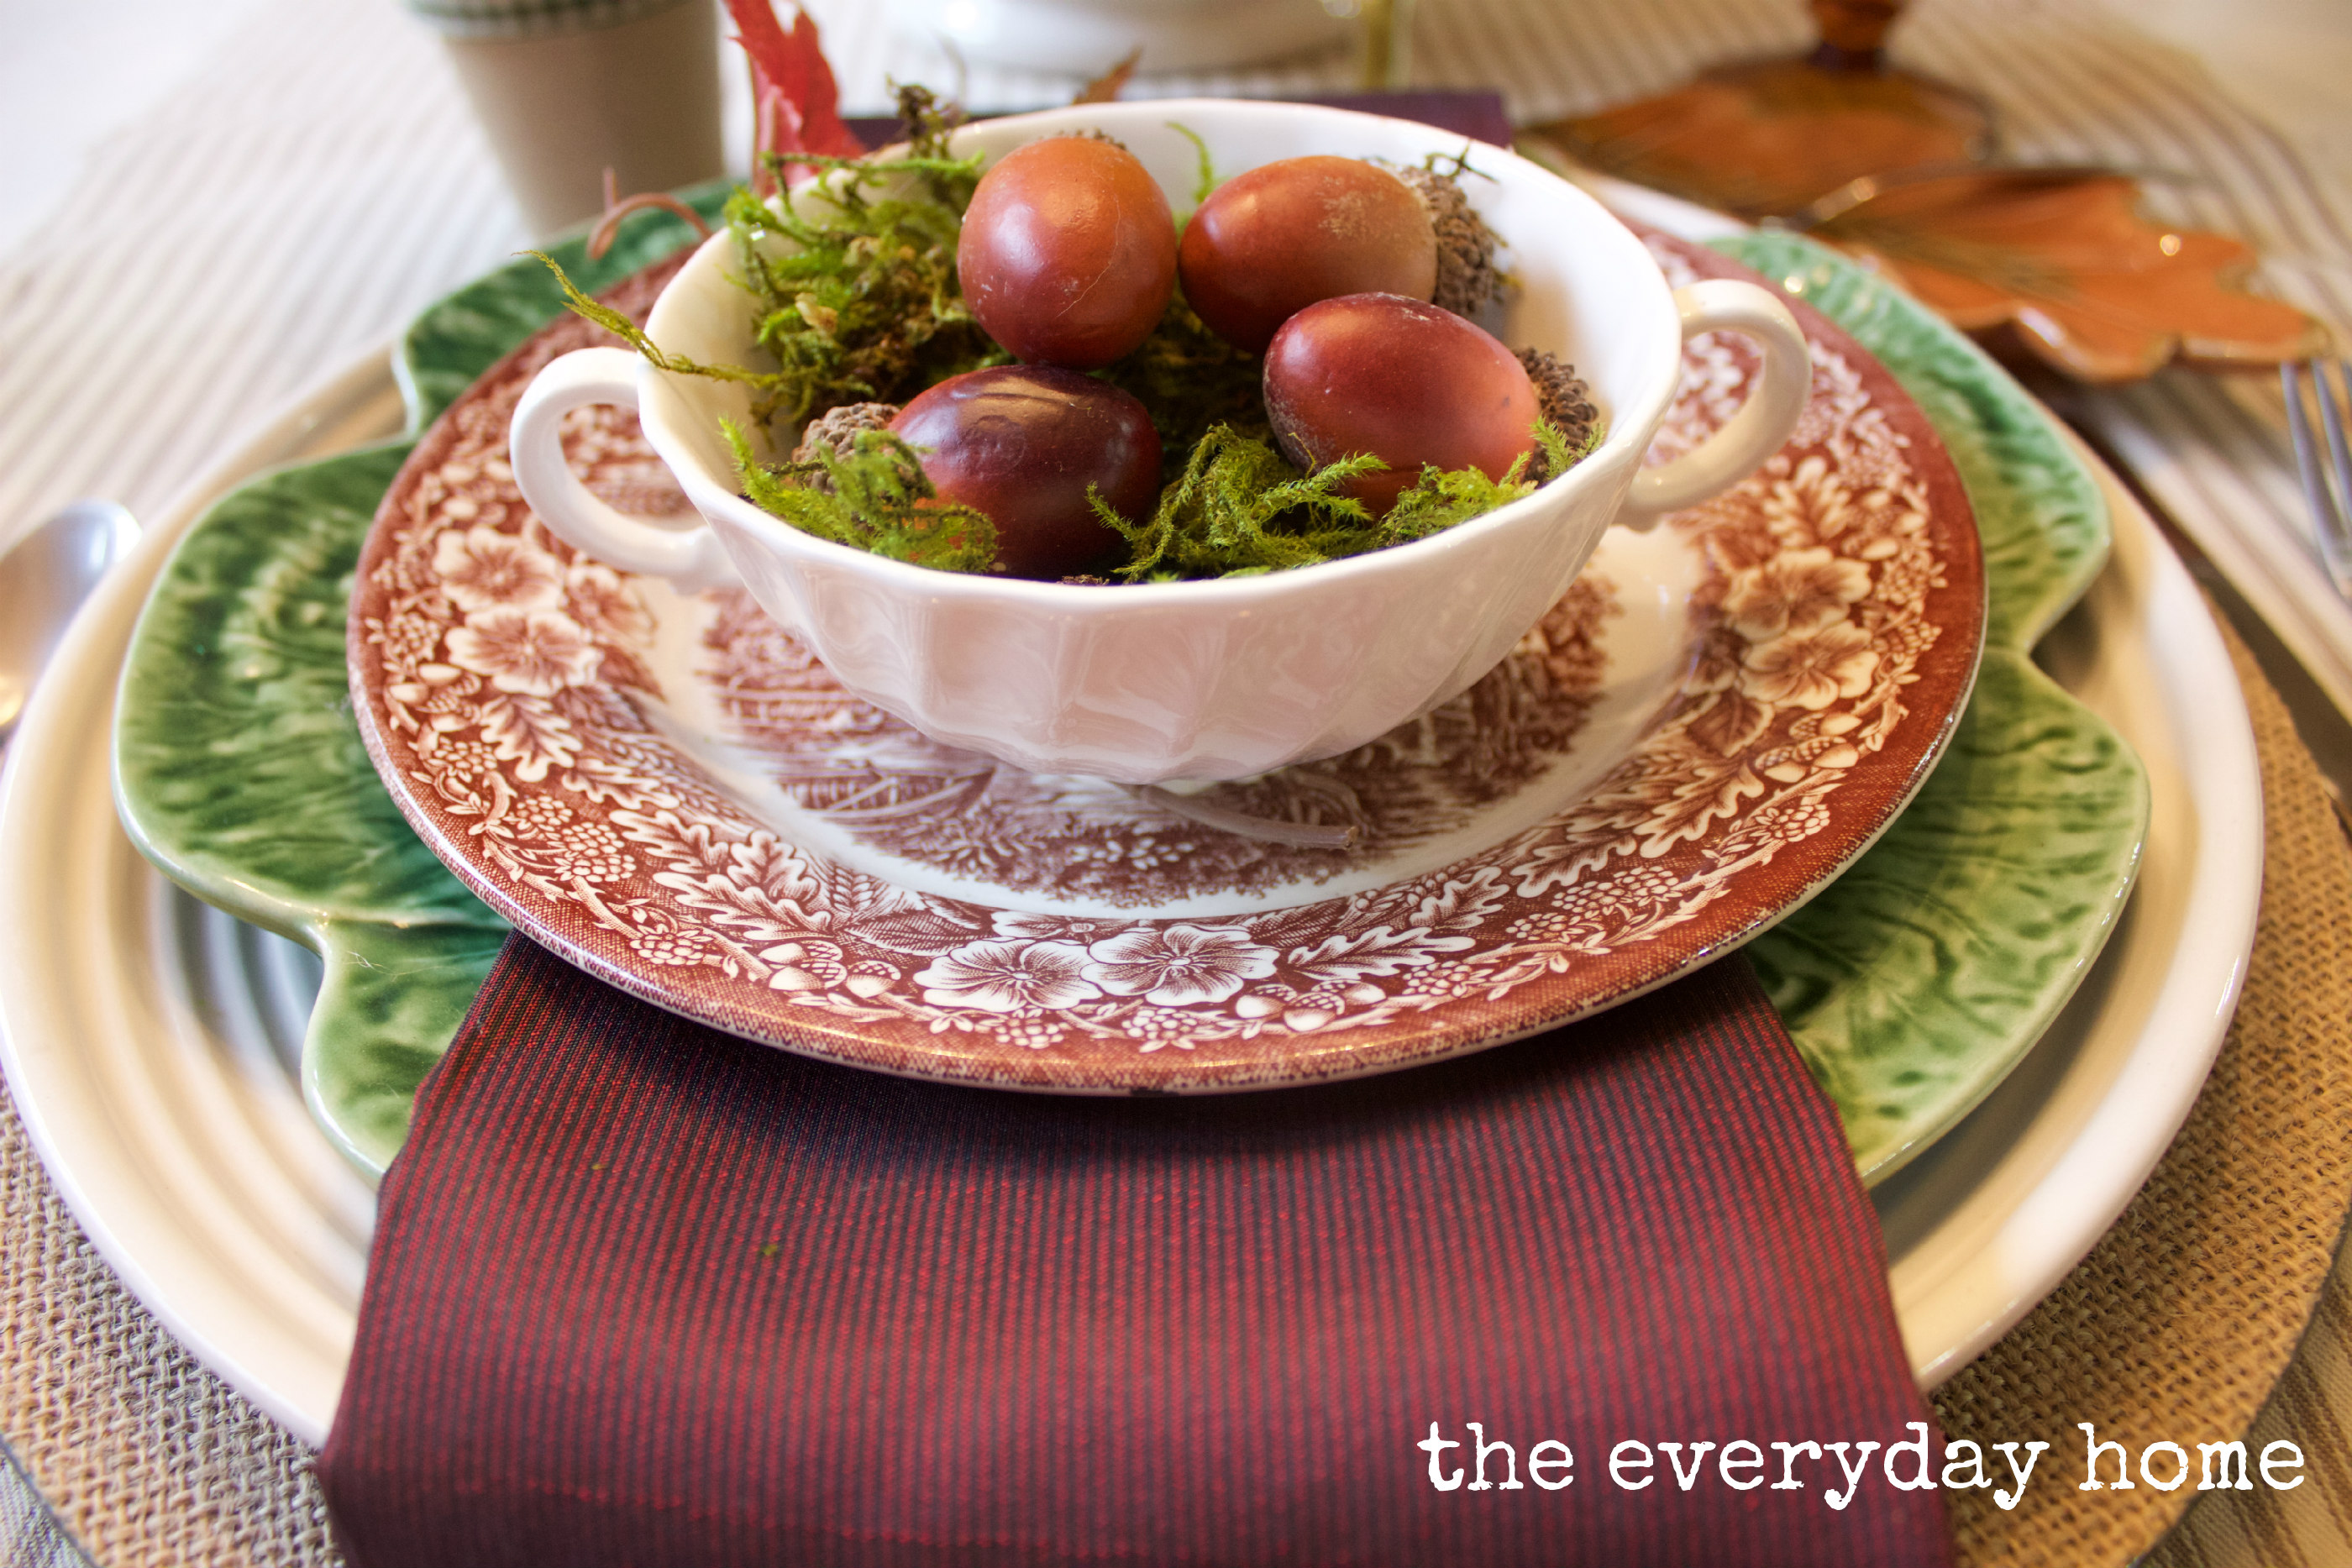 Fall Acorn Placesetting The Everyday Home www.everydayhomeblog.com